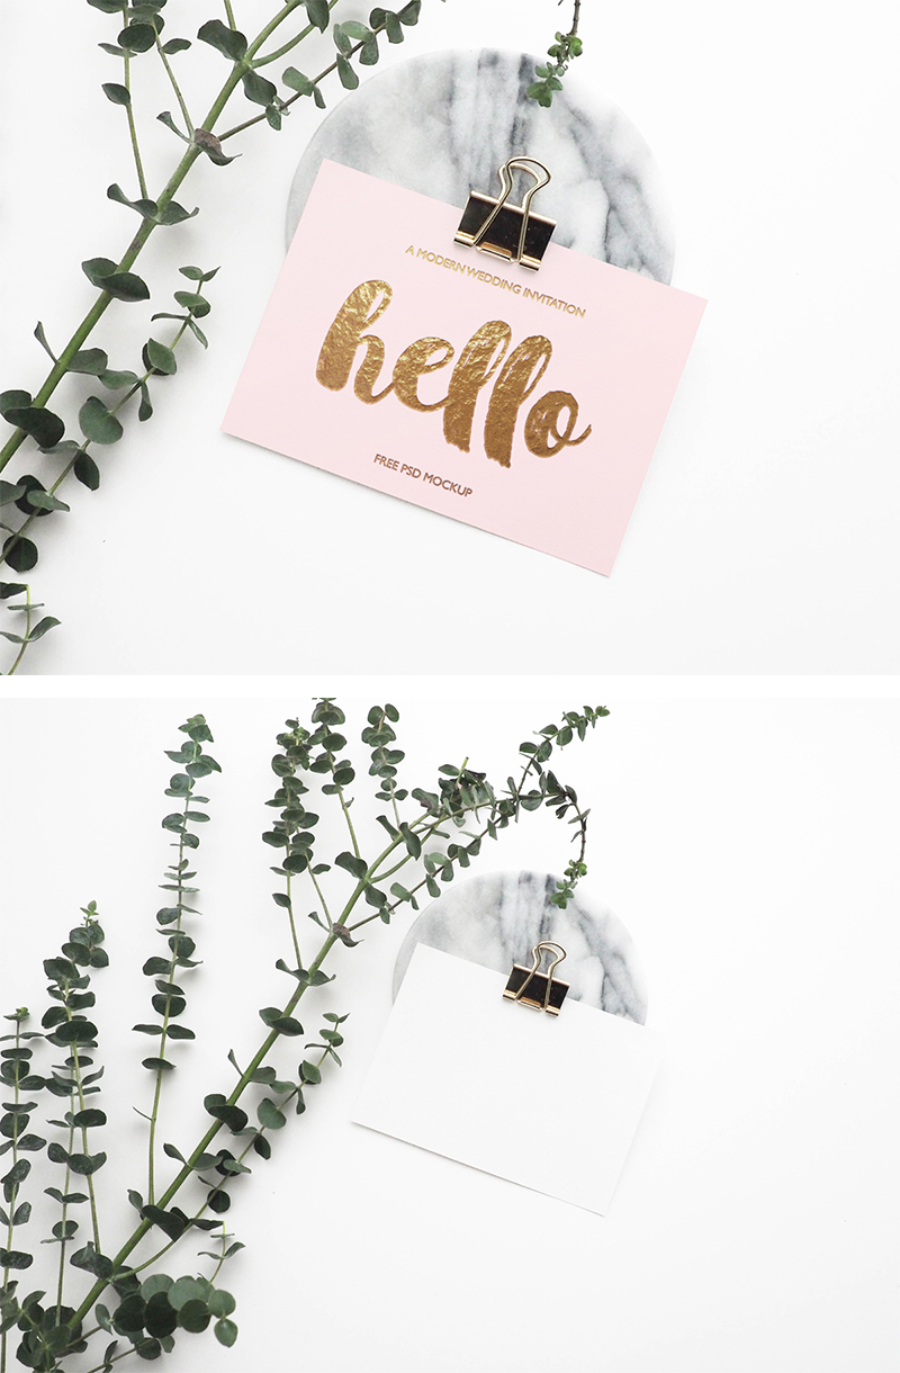 Free Stylish Greeting Card Mockup